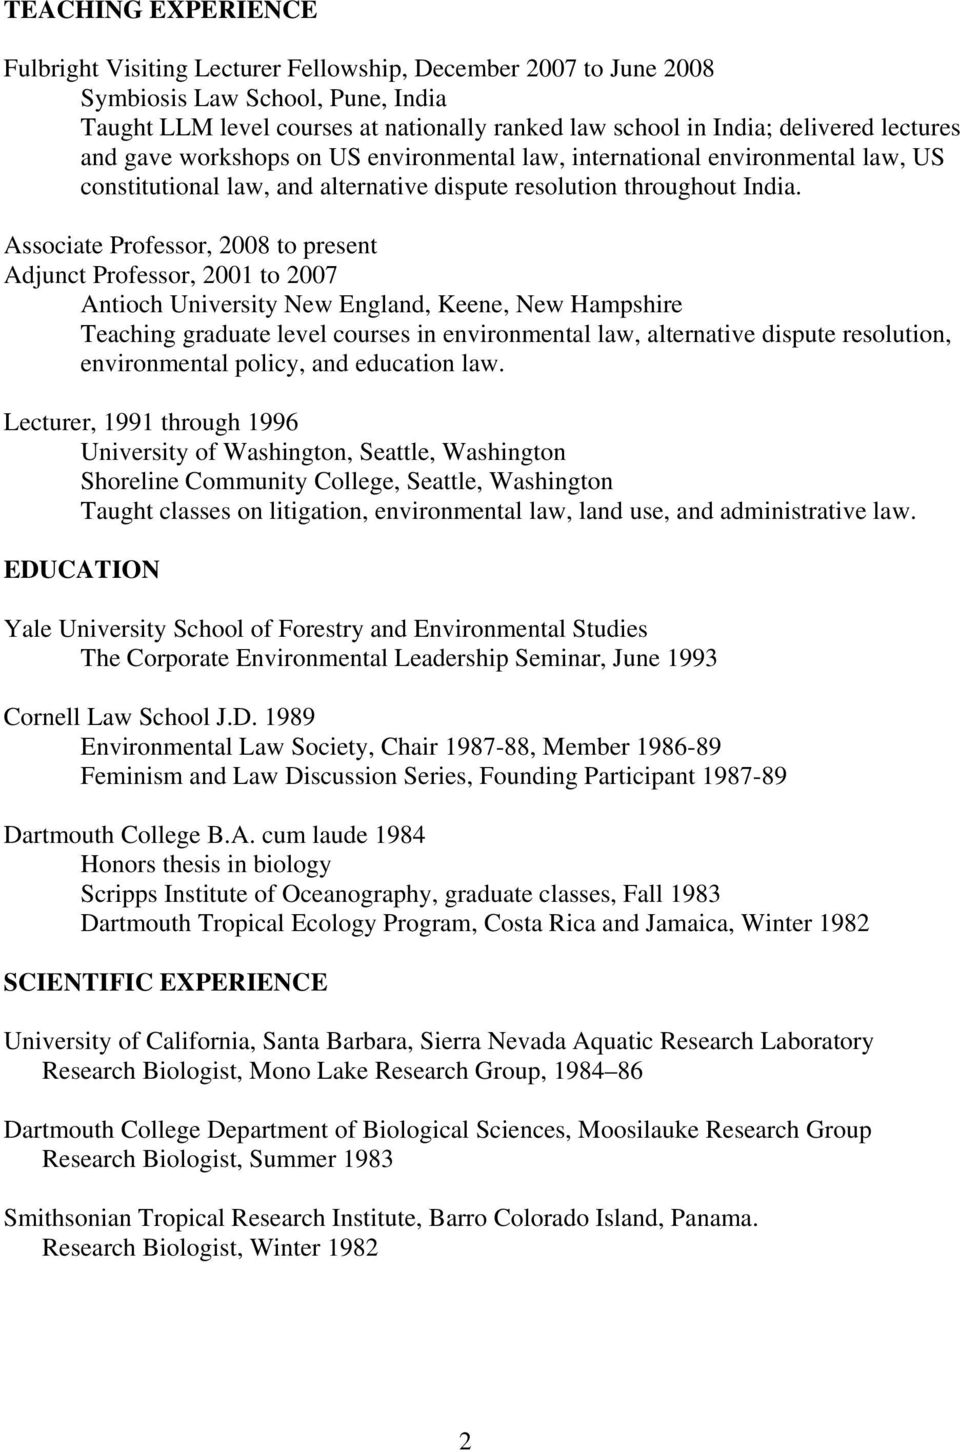 Associate Professor, 2008 to present Adjunct Professor, 2001 to 2007 Antioch University New England, Keene, New Hampshire Teaching graduate level courses in environmental law, alternative dispute